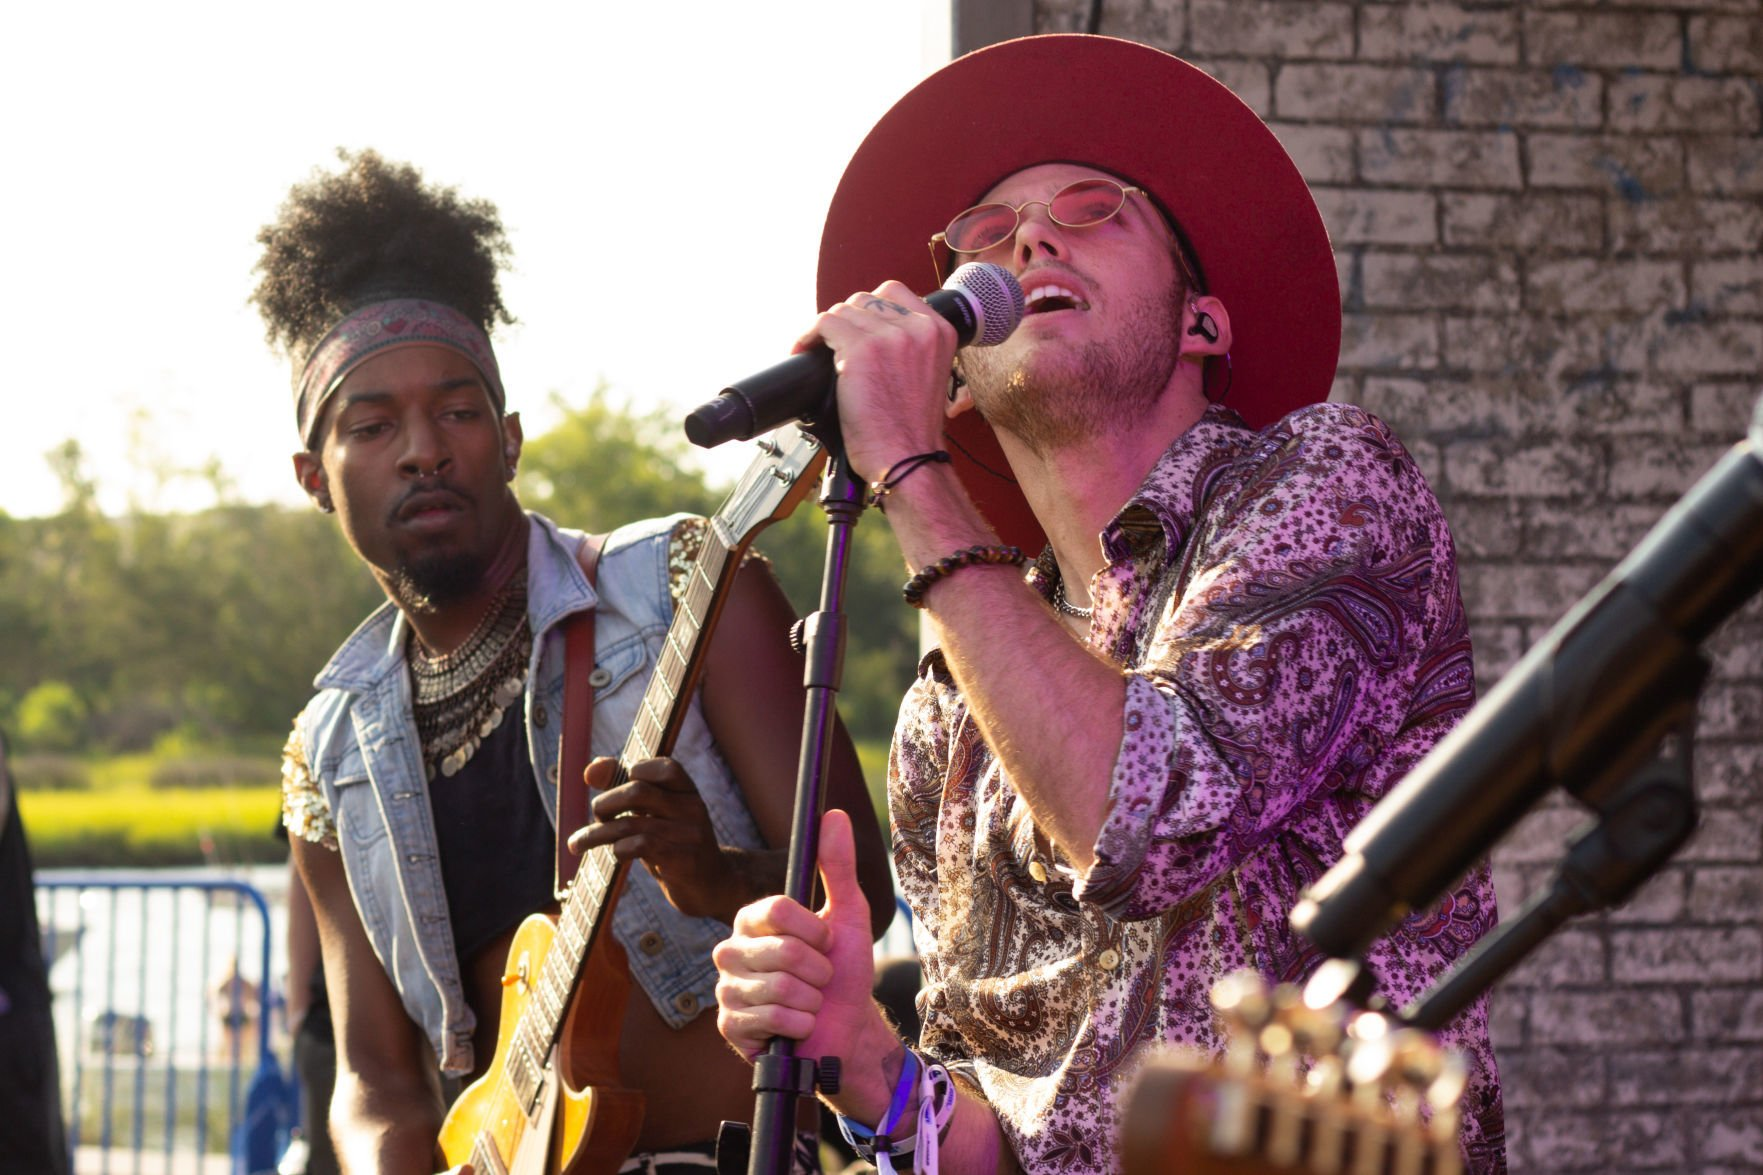 Bud Light Getaway Festival at Riverfront Park in North Charleston | Post and Courier